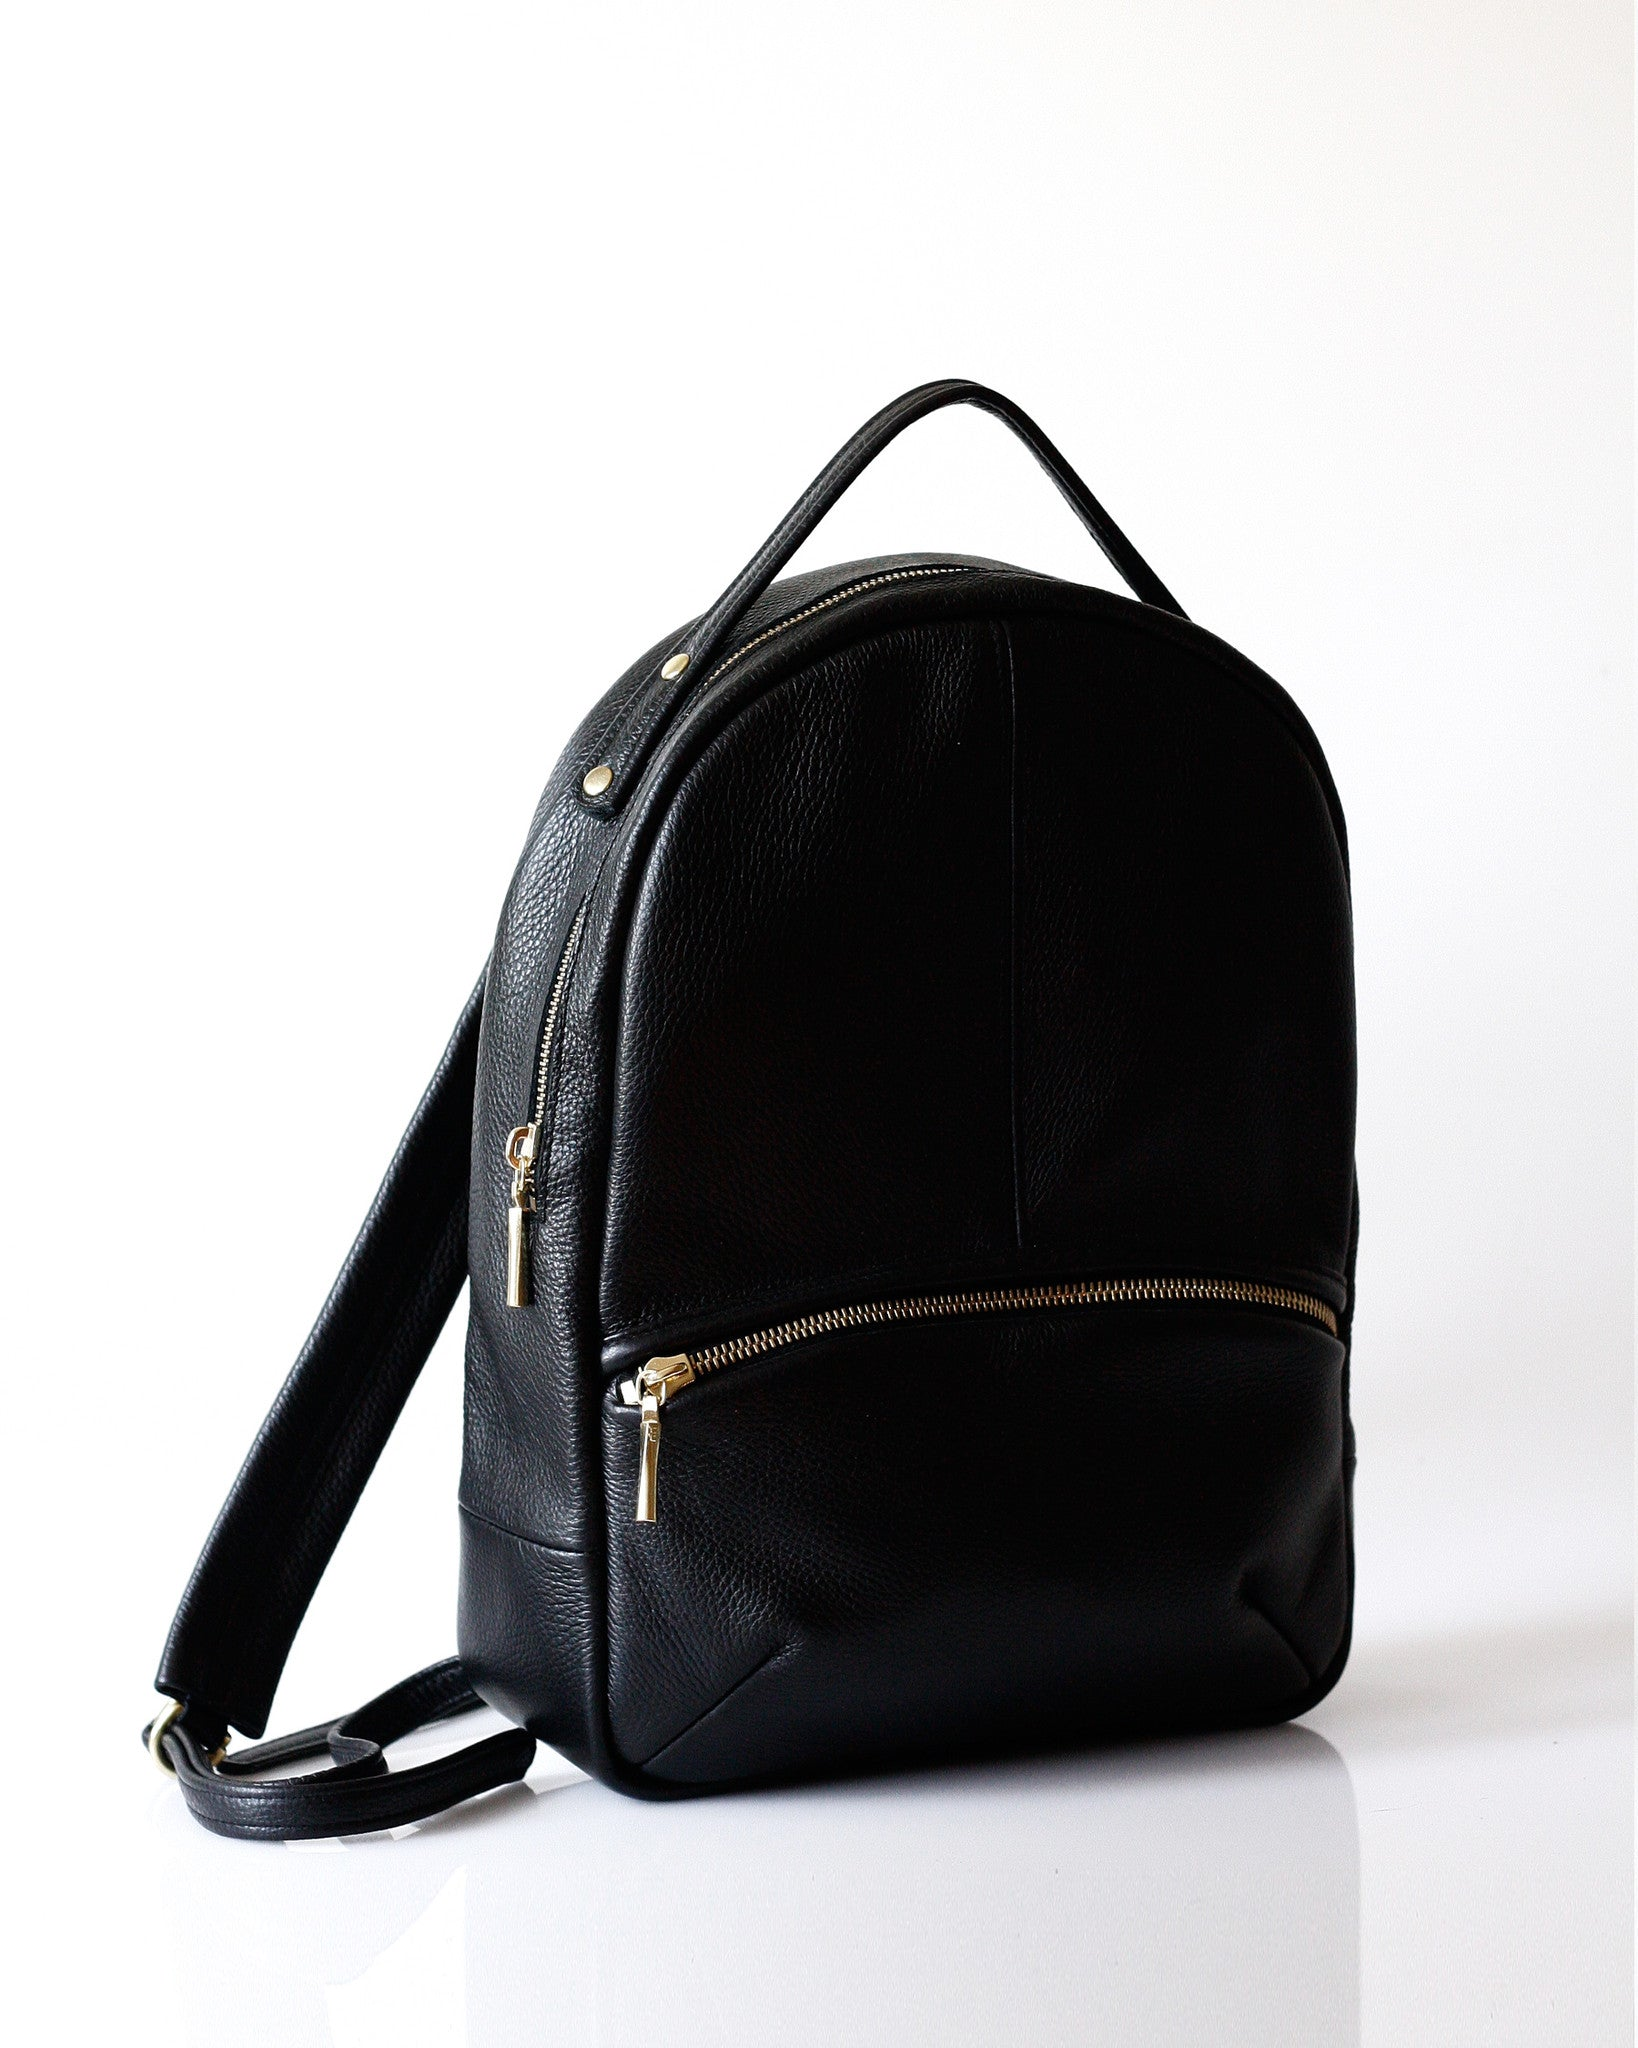 Baby Kanye Backpack - Opelle bag Permanent Collection - Opelle leather handbag handcrafted leather bag toronto Canada